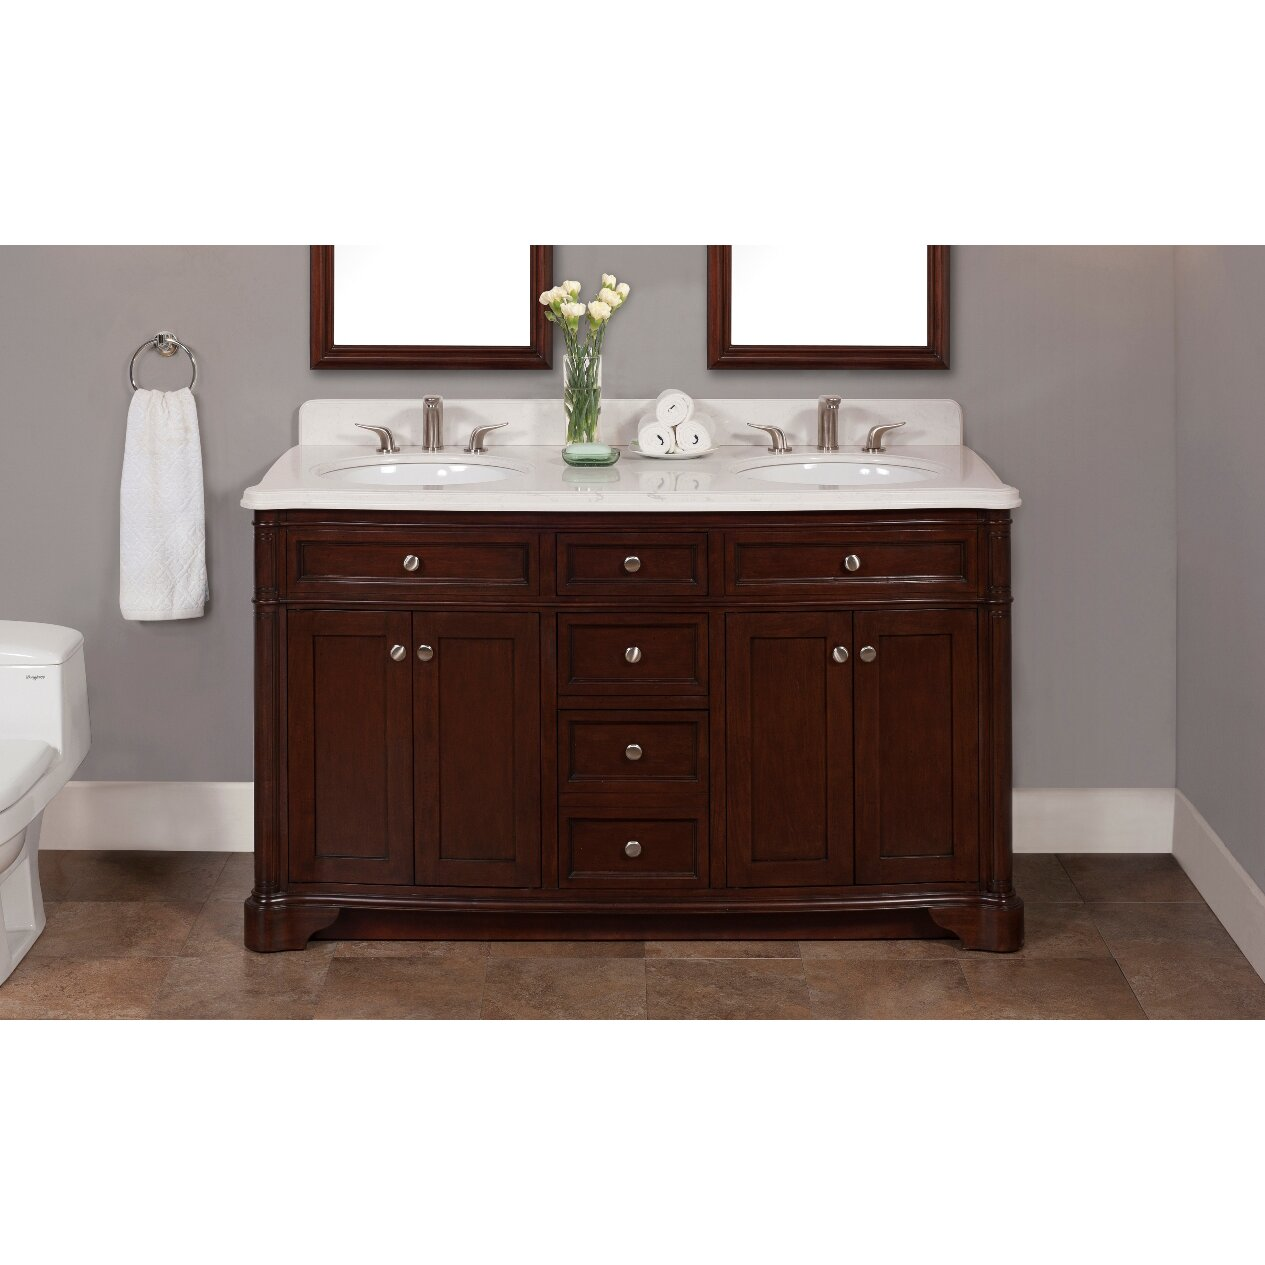 60 Bathroom Cabinet Lanza Chester 60 Double Bathroom Vanity Set Reviews Wayfair